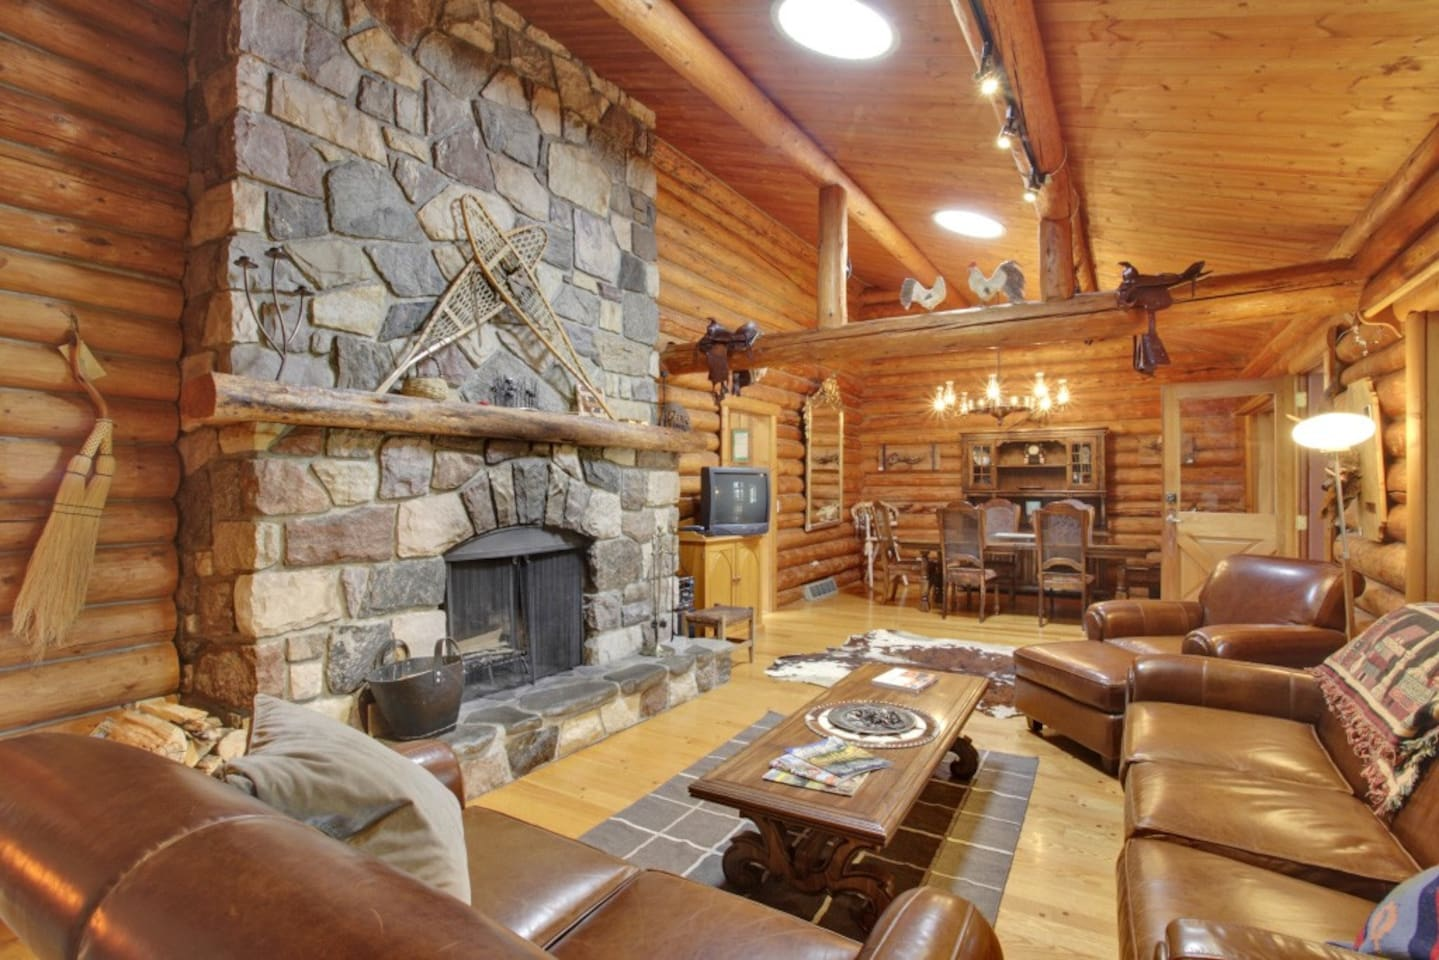 Living area with stone fireplace